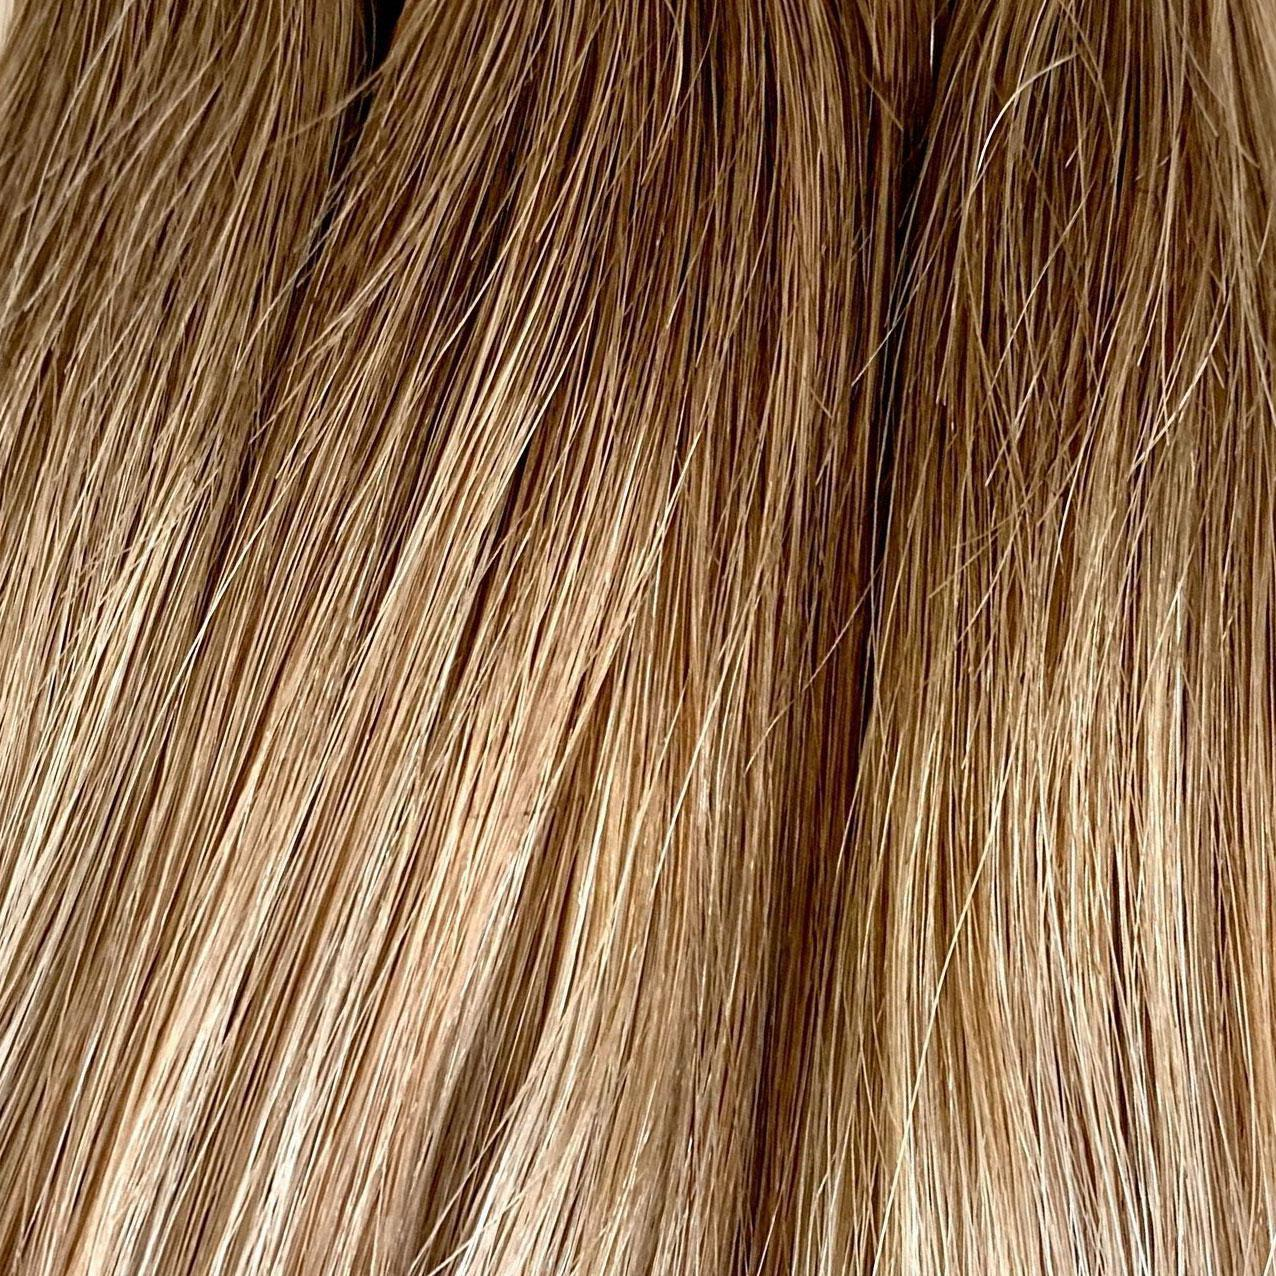 Machine_Sewn_Weft - Laced Hair Machine Sewn Weft Extensions Rooted #6/8/60